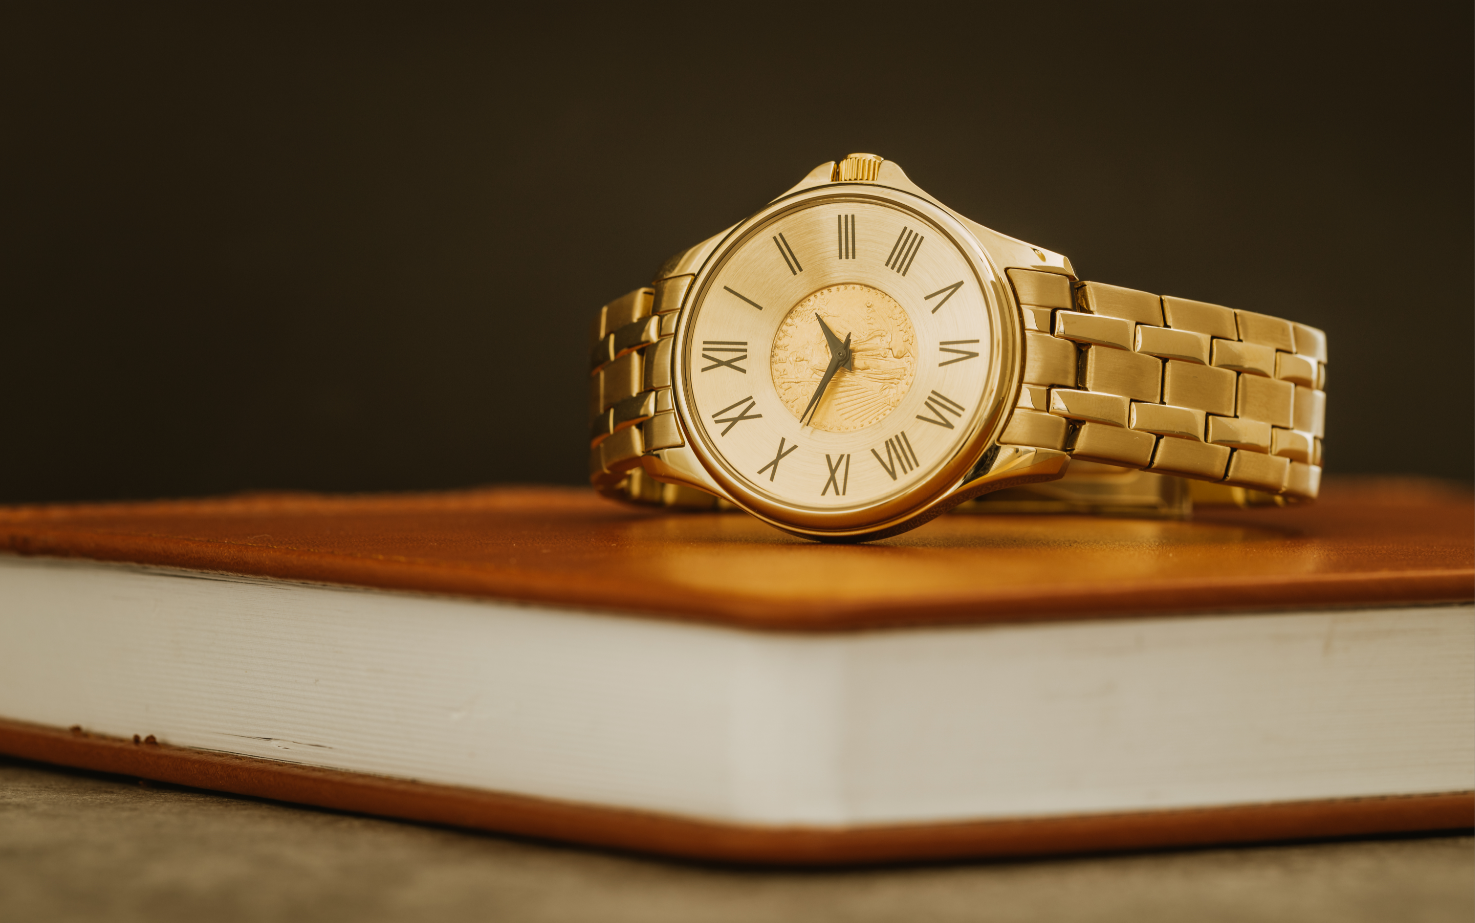 The coin watch connects tradition with history, and with just a glance, serves as a constant reminder of some of the most favoured and timeless coins.